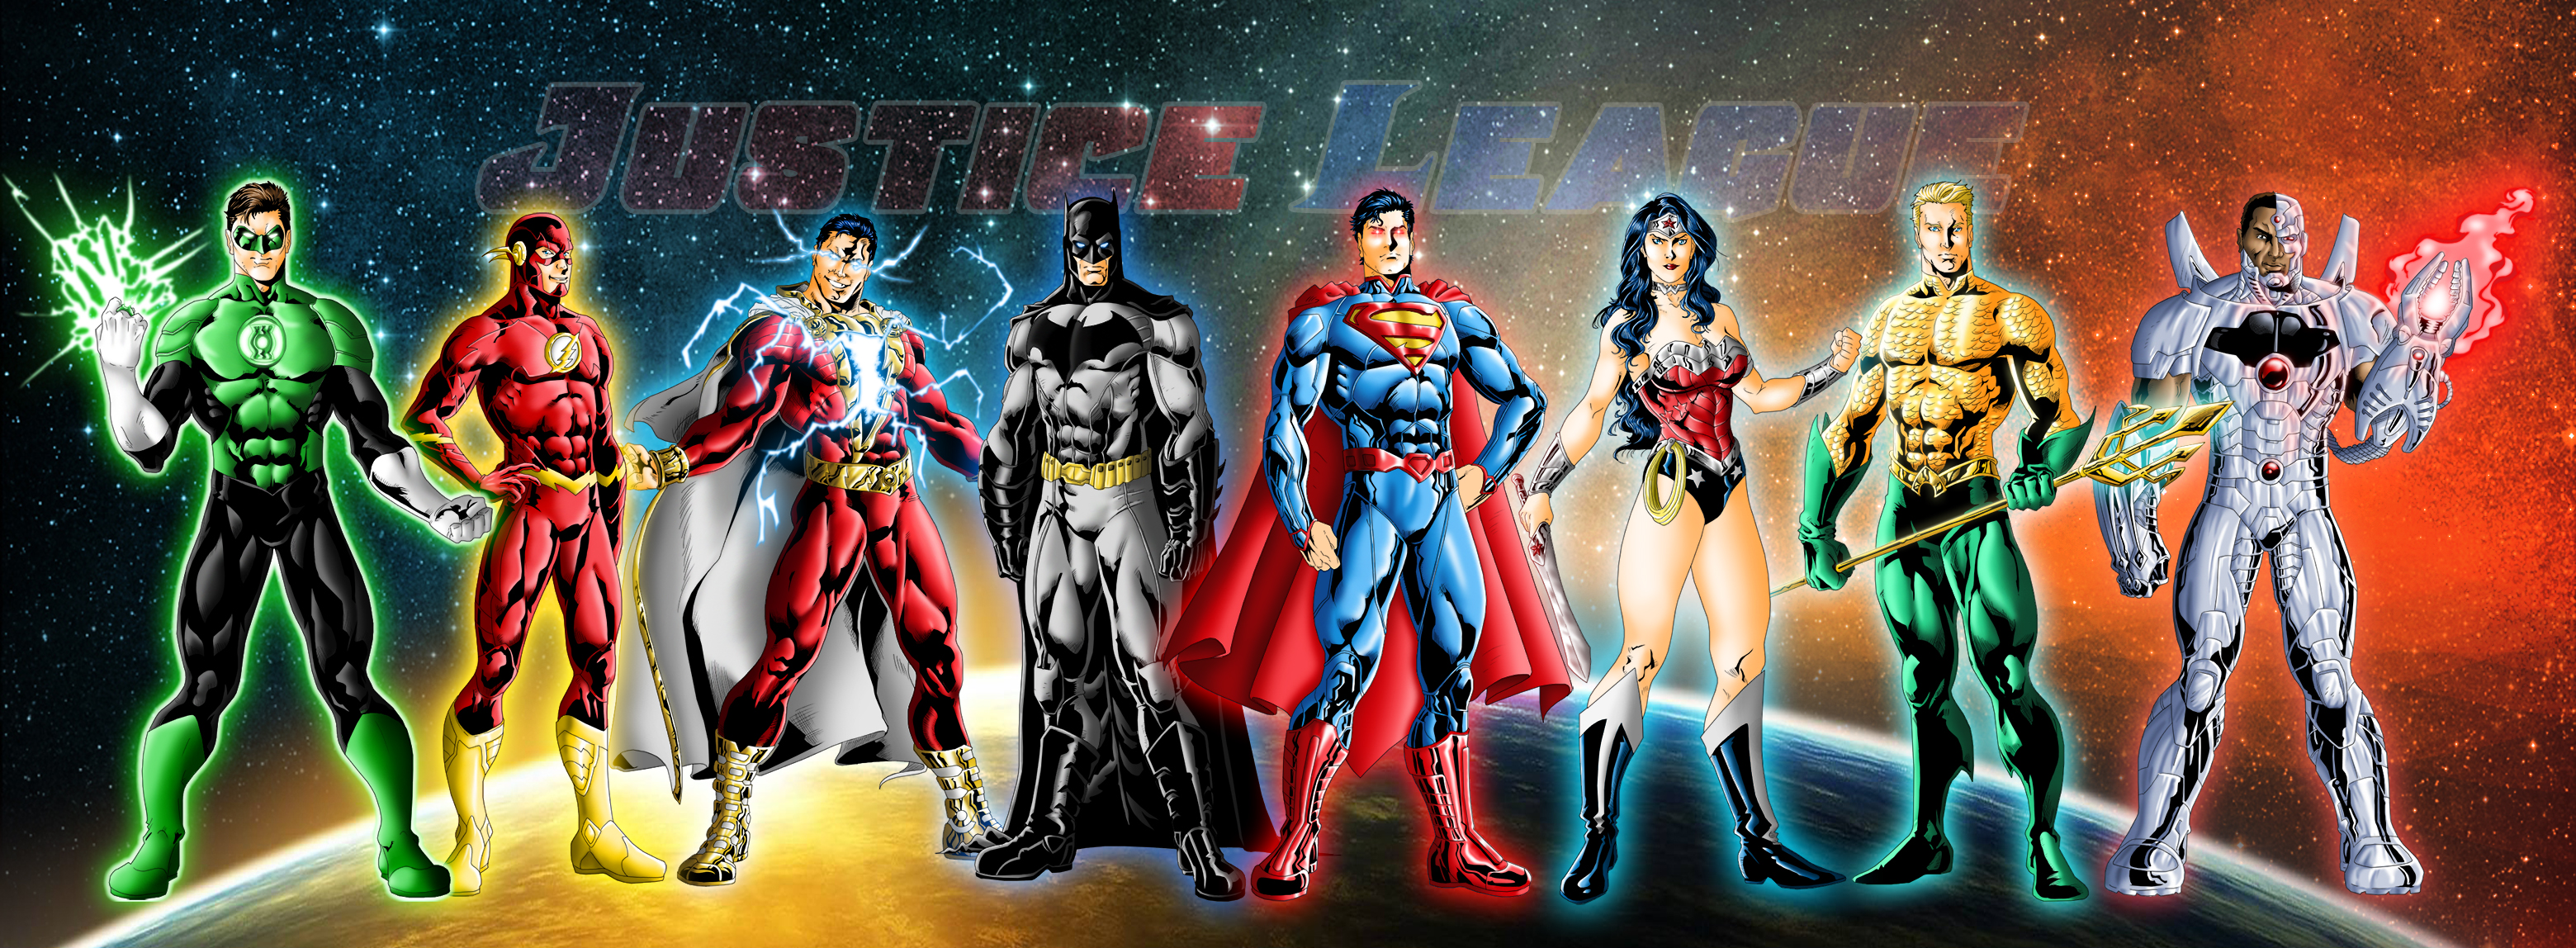 New 52 Justice League by JeanSinclairArts 3120x1148